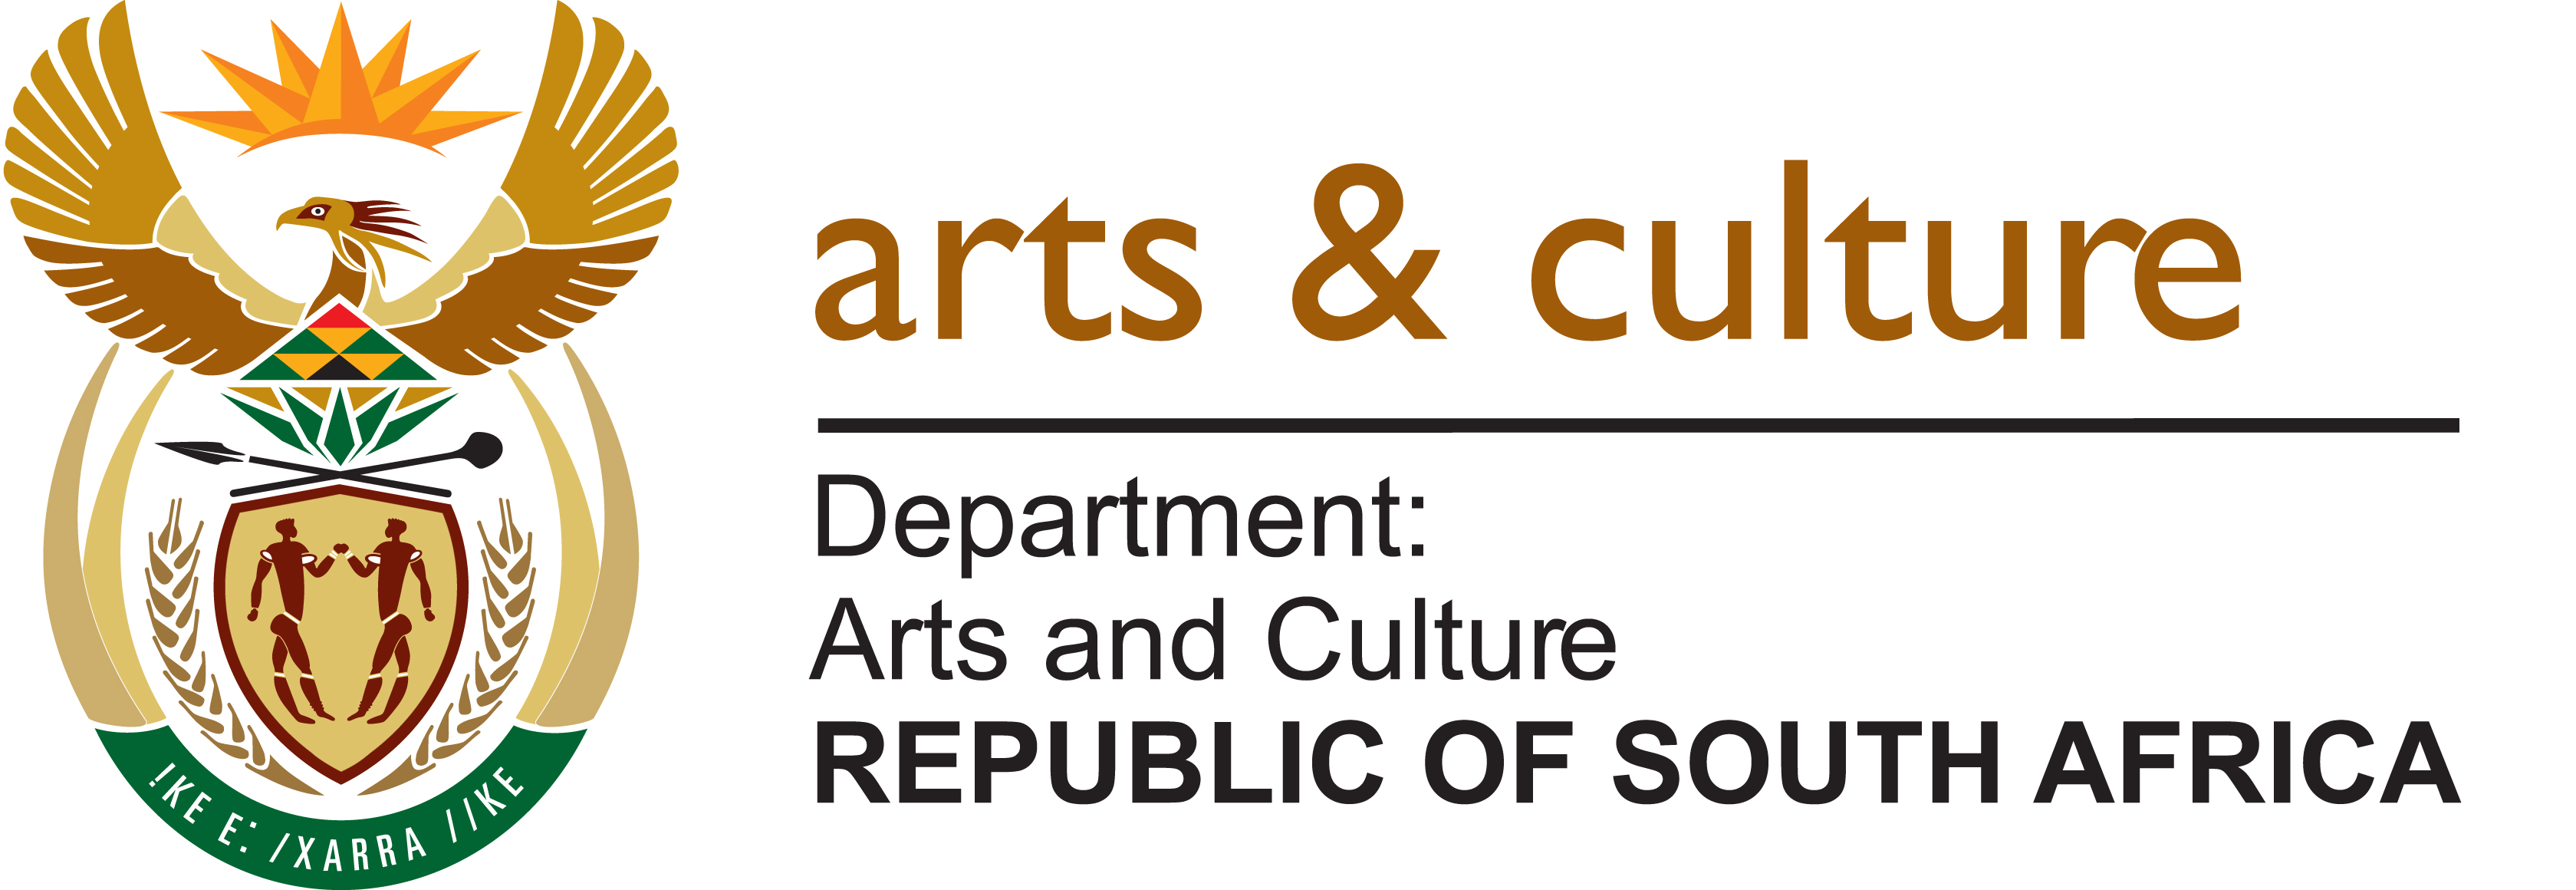 Department of Arts and Culture, South Africa (DCA)